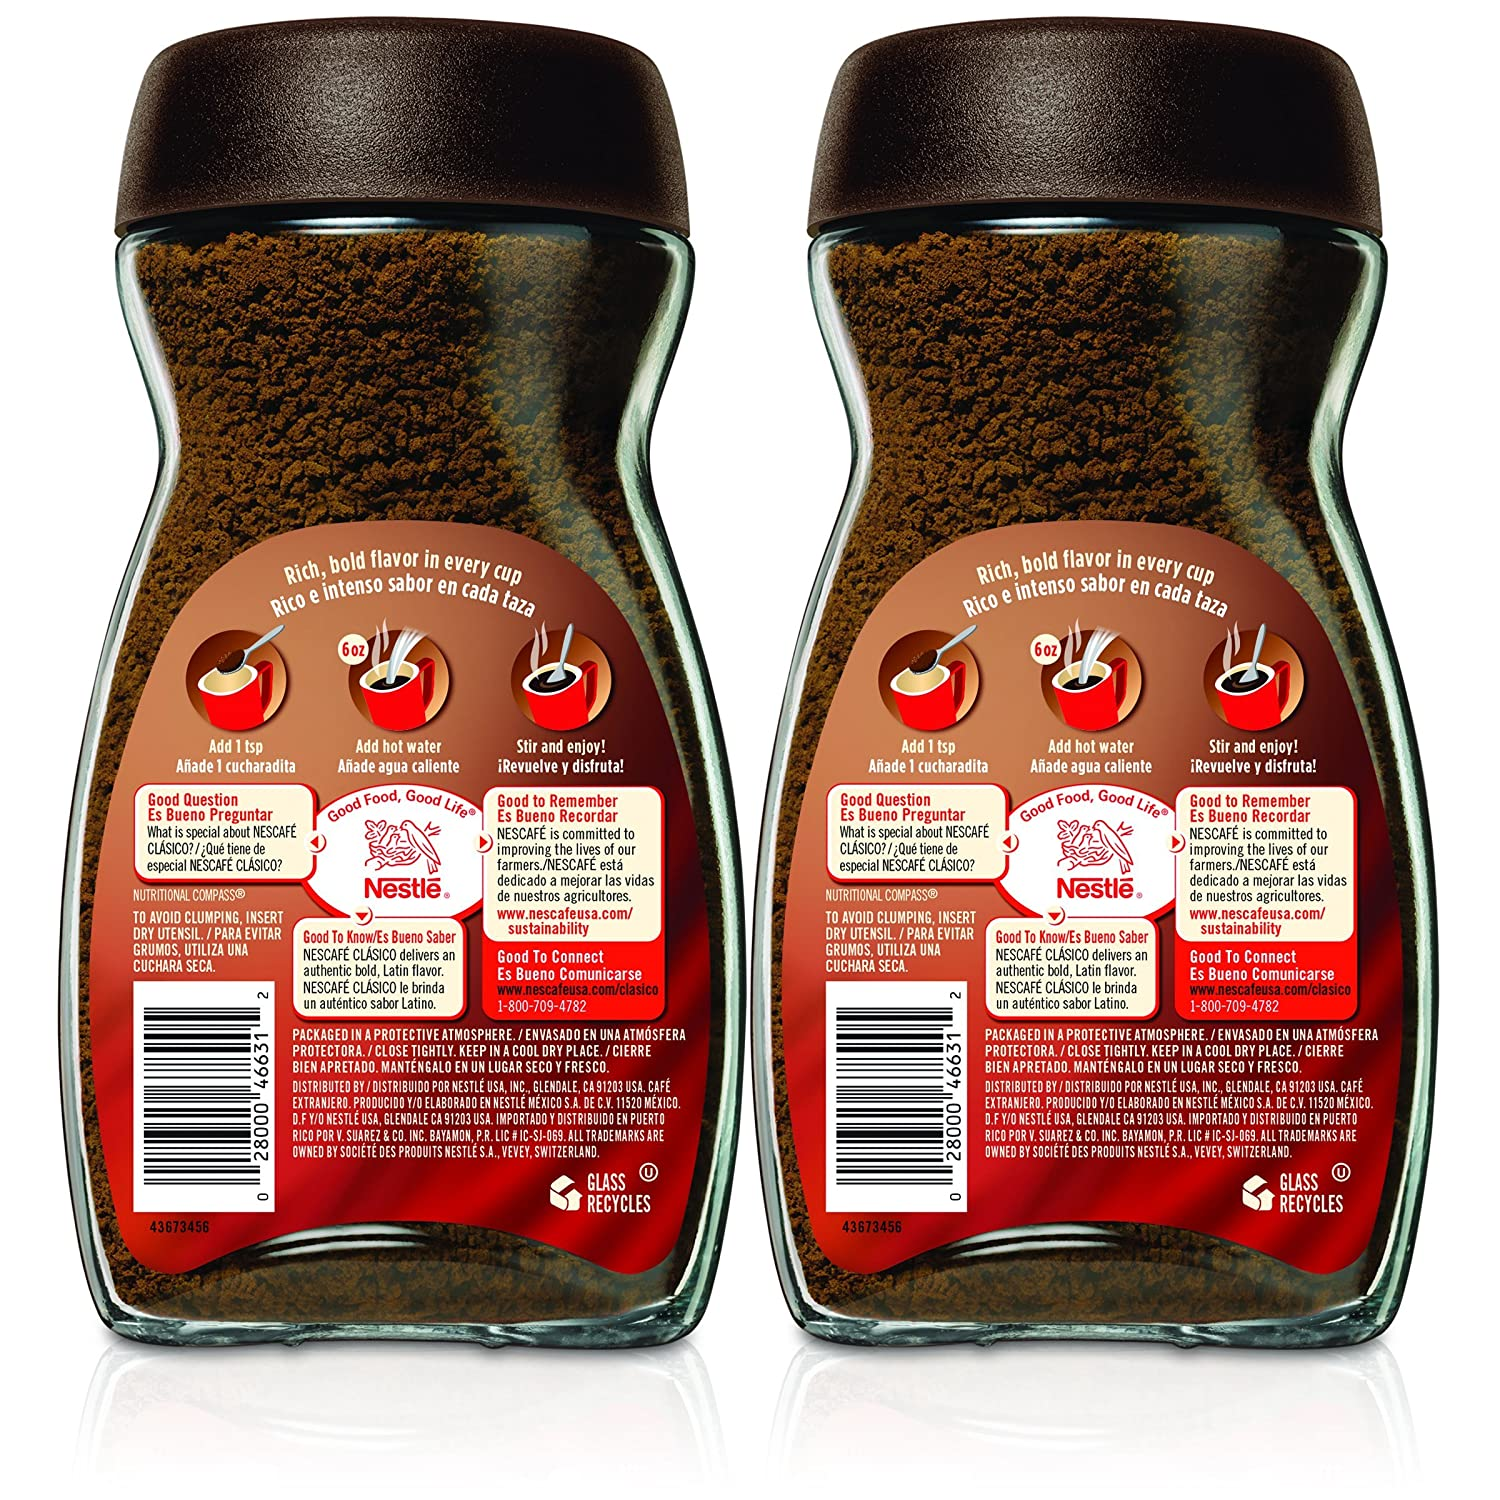 Amazon.com : Nescafe Clasico Instant Coffee, 7 Ounce (Pack of 2) : Grocery & Gourmet Food